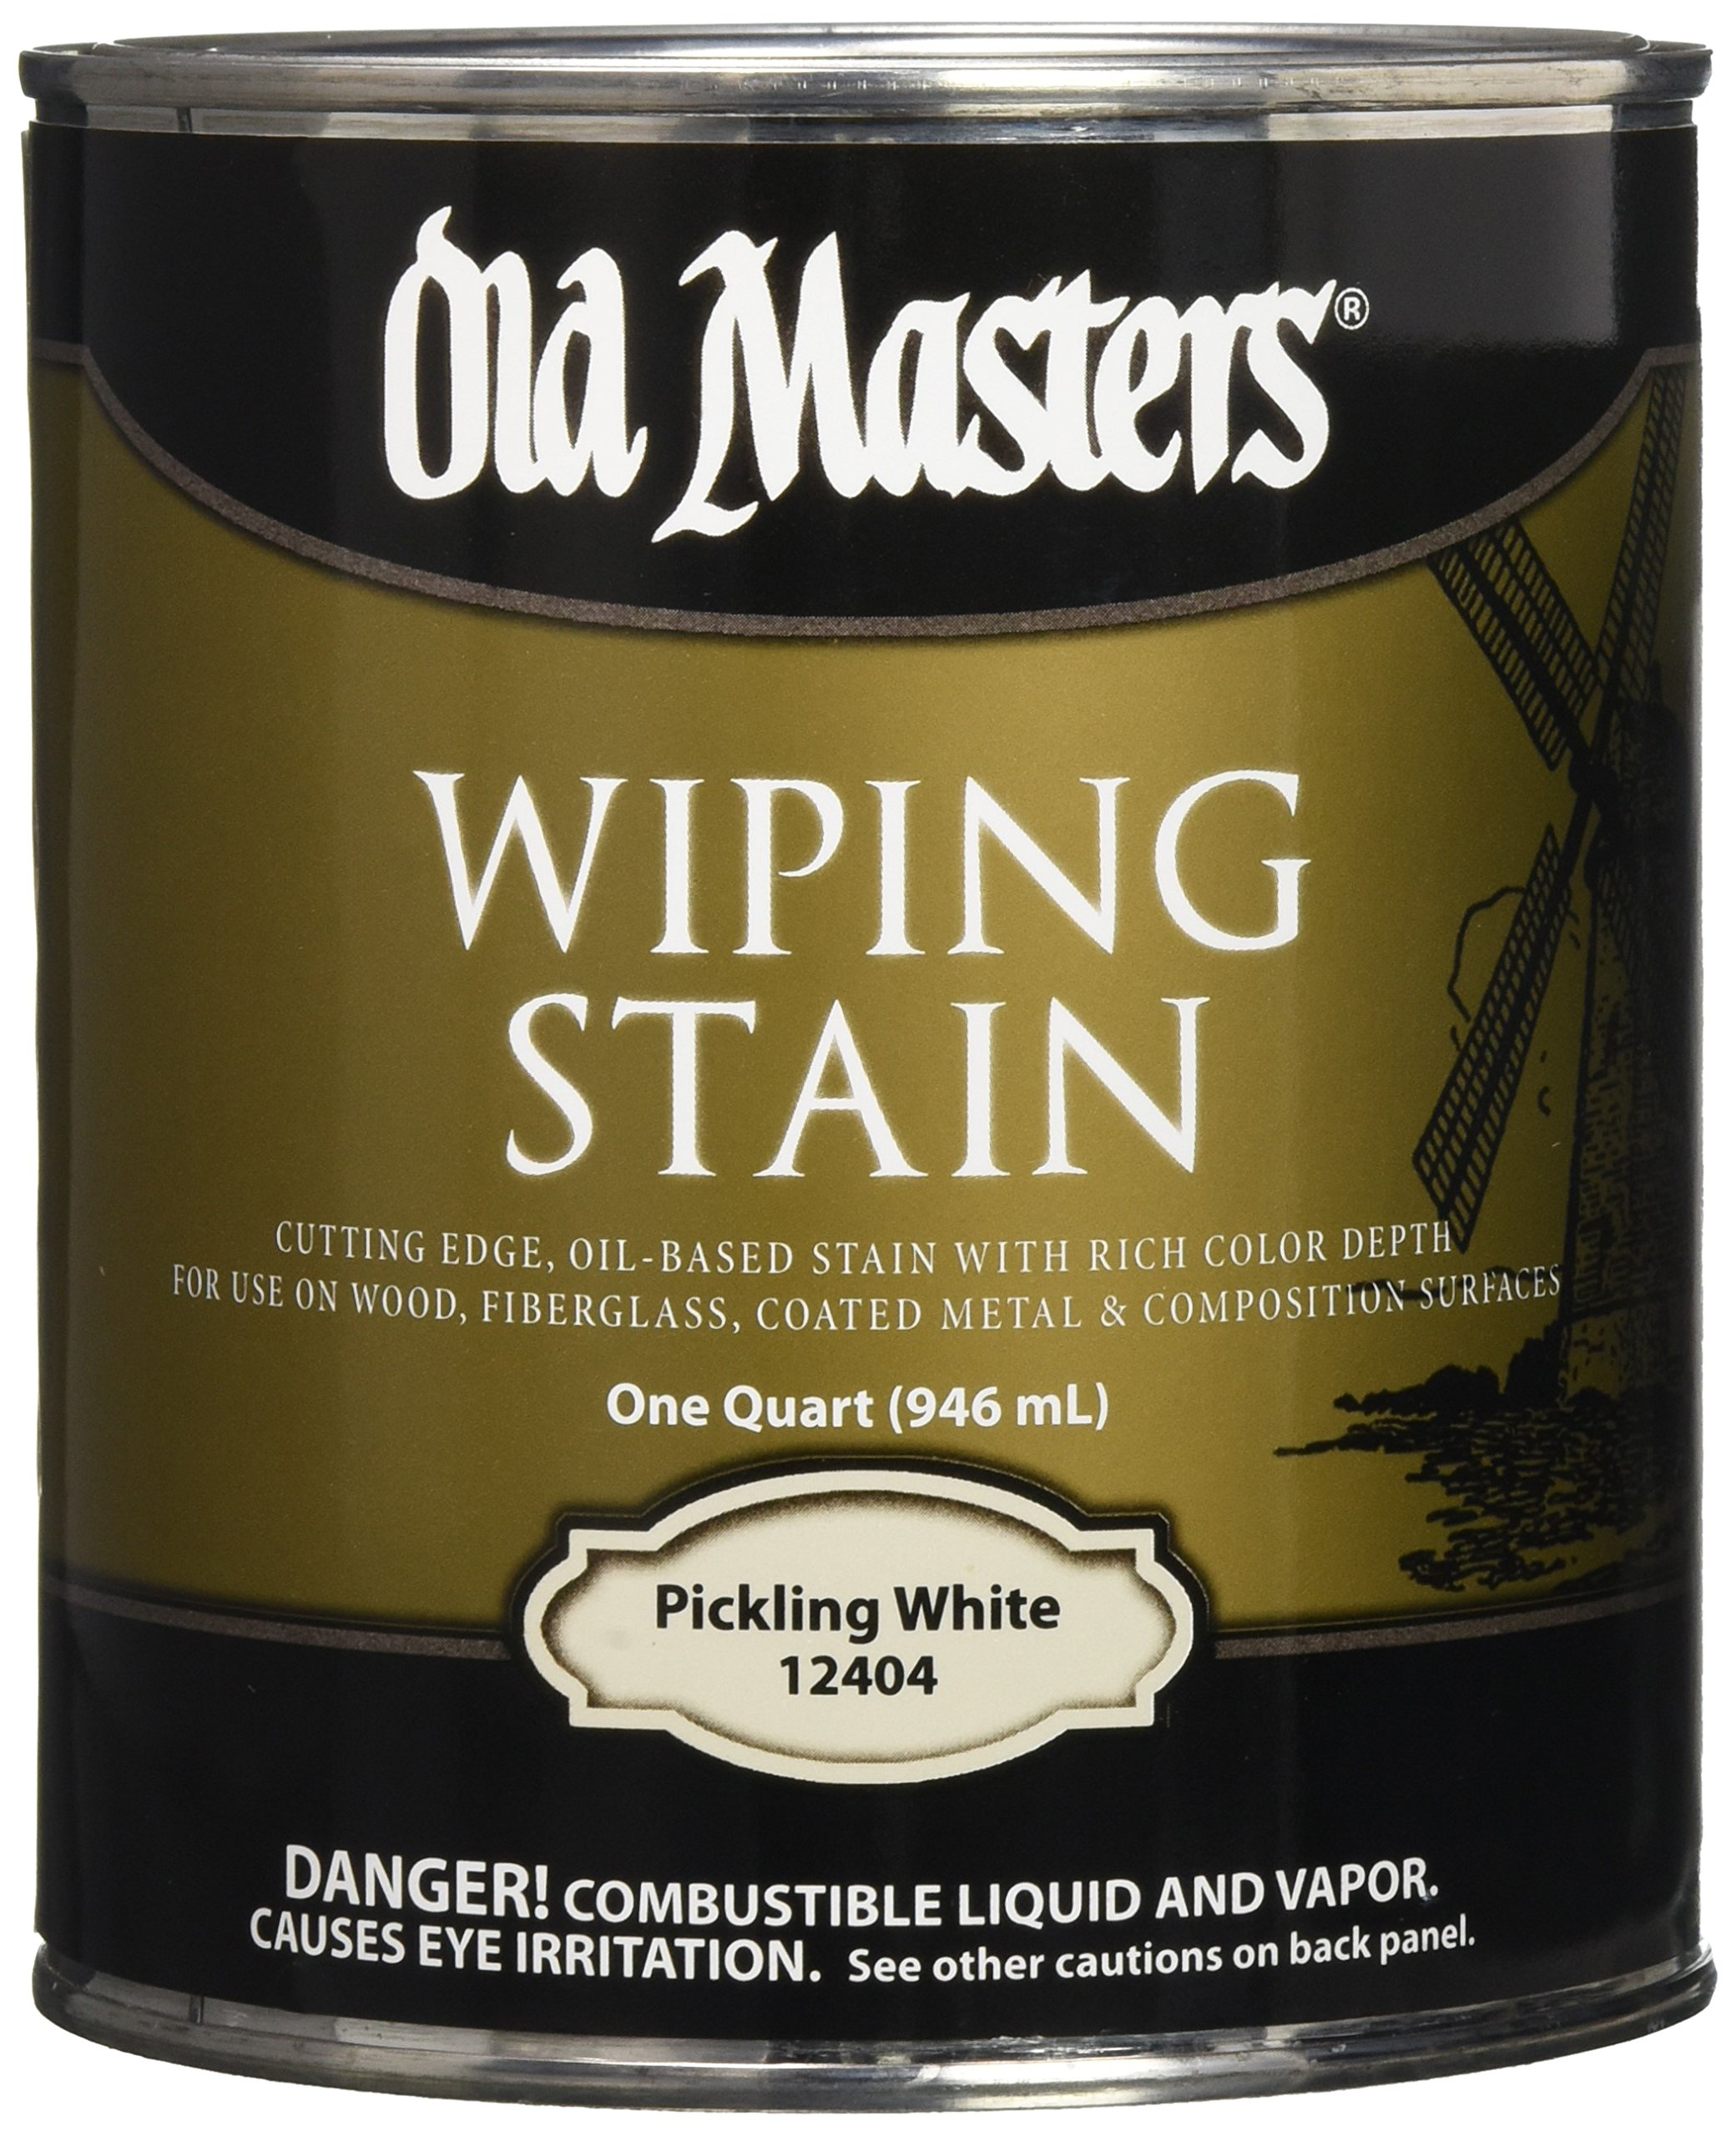 OLD MASTERS 12404 Wip Stain, Pickling White